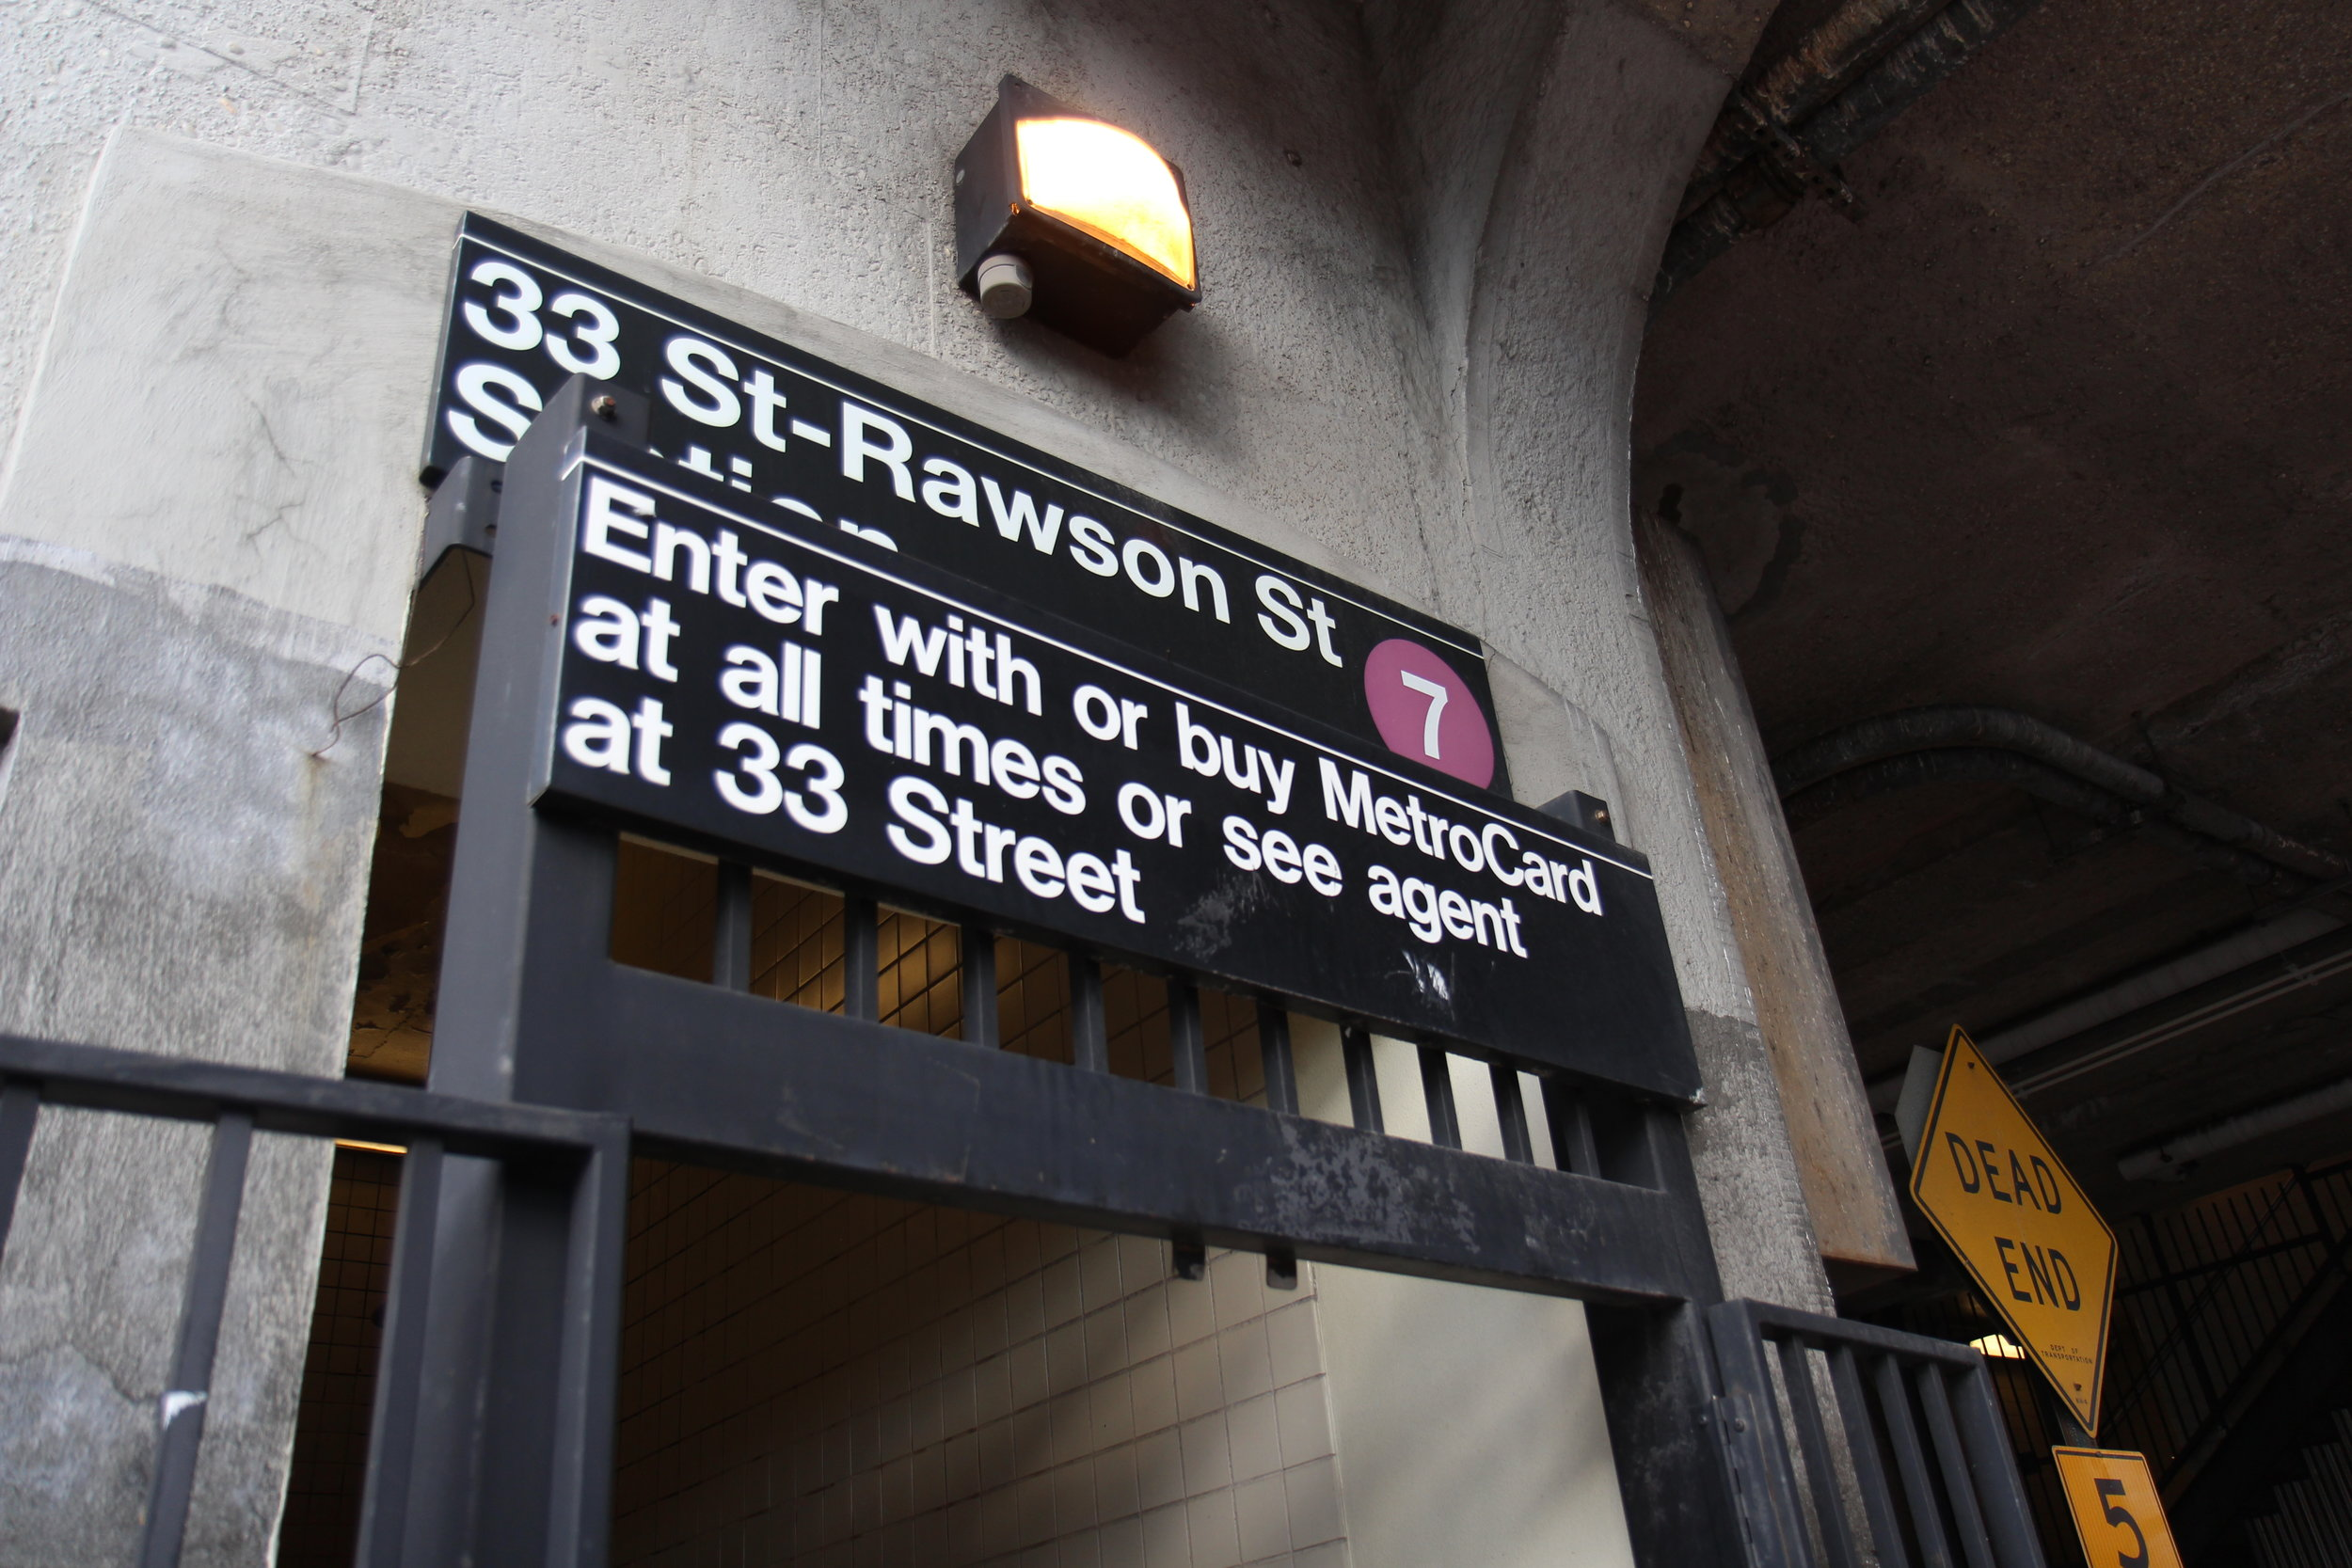 The 33rd Street-Rawson Street Station on the No. 7 line is one of the many subway stations in Queens that is not ADA-accessible.